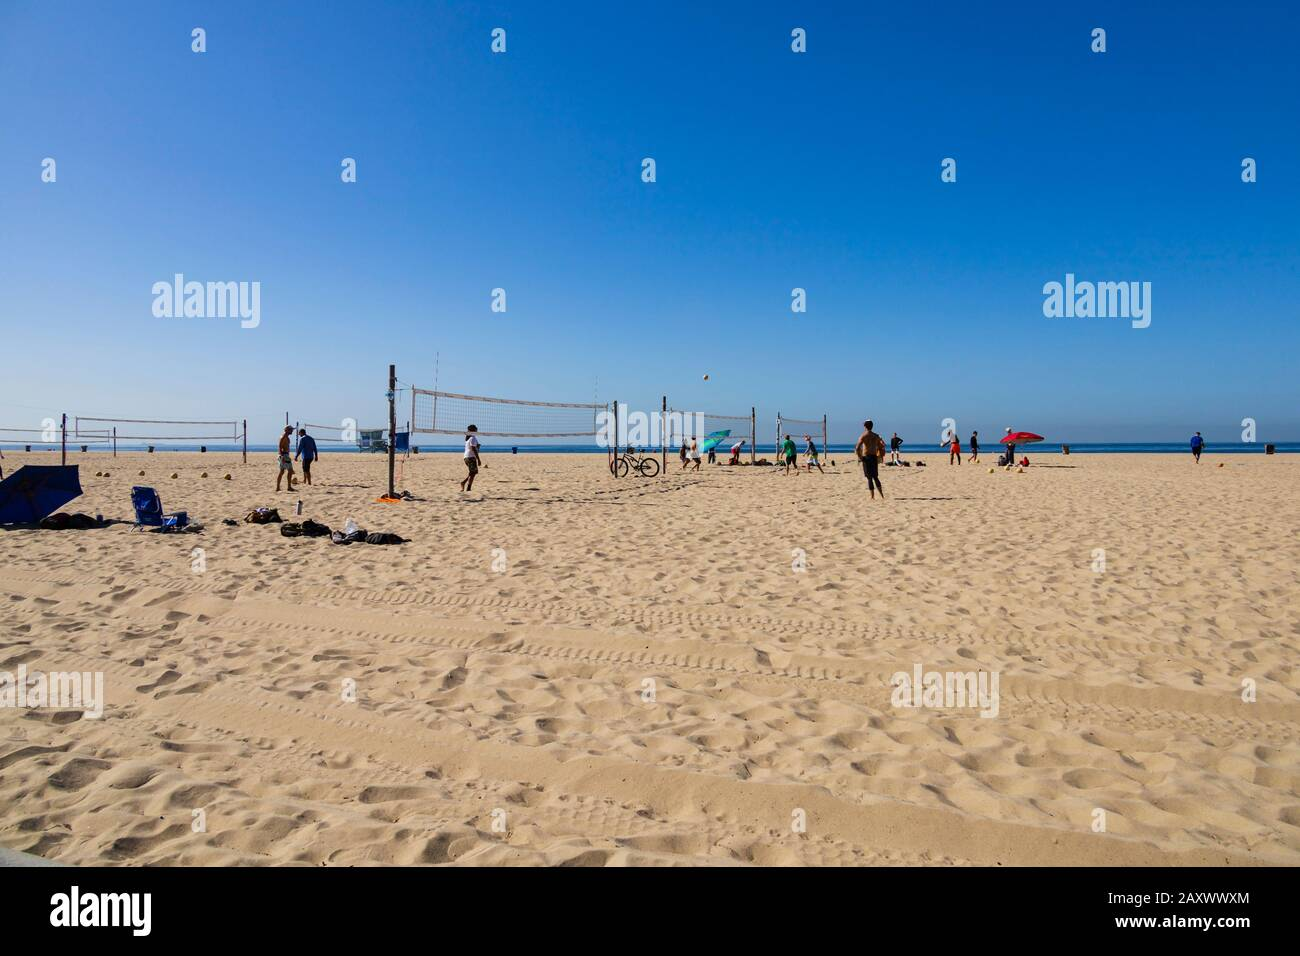 Playing volleyball on the beach. Santa Monica, California, United States of America. USA. October 2019 Stock Photo